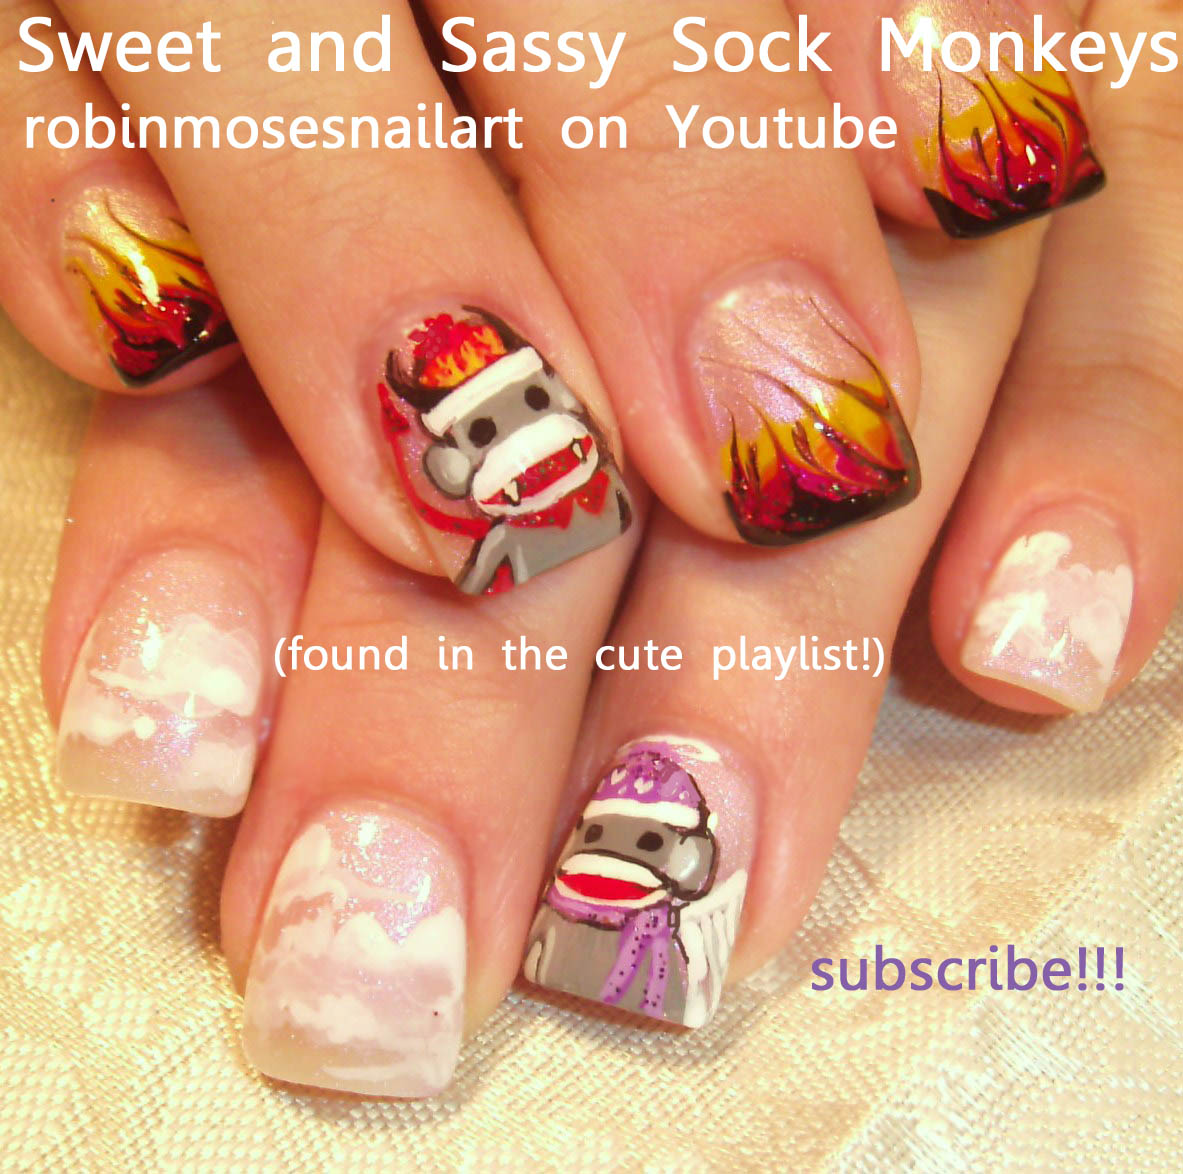 SOCK MONKEY NAILS robin moses nailart…